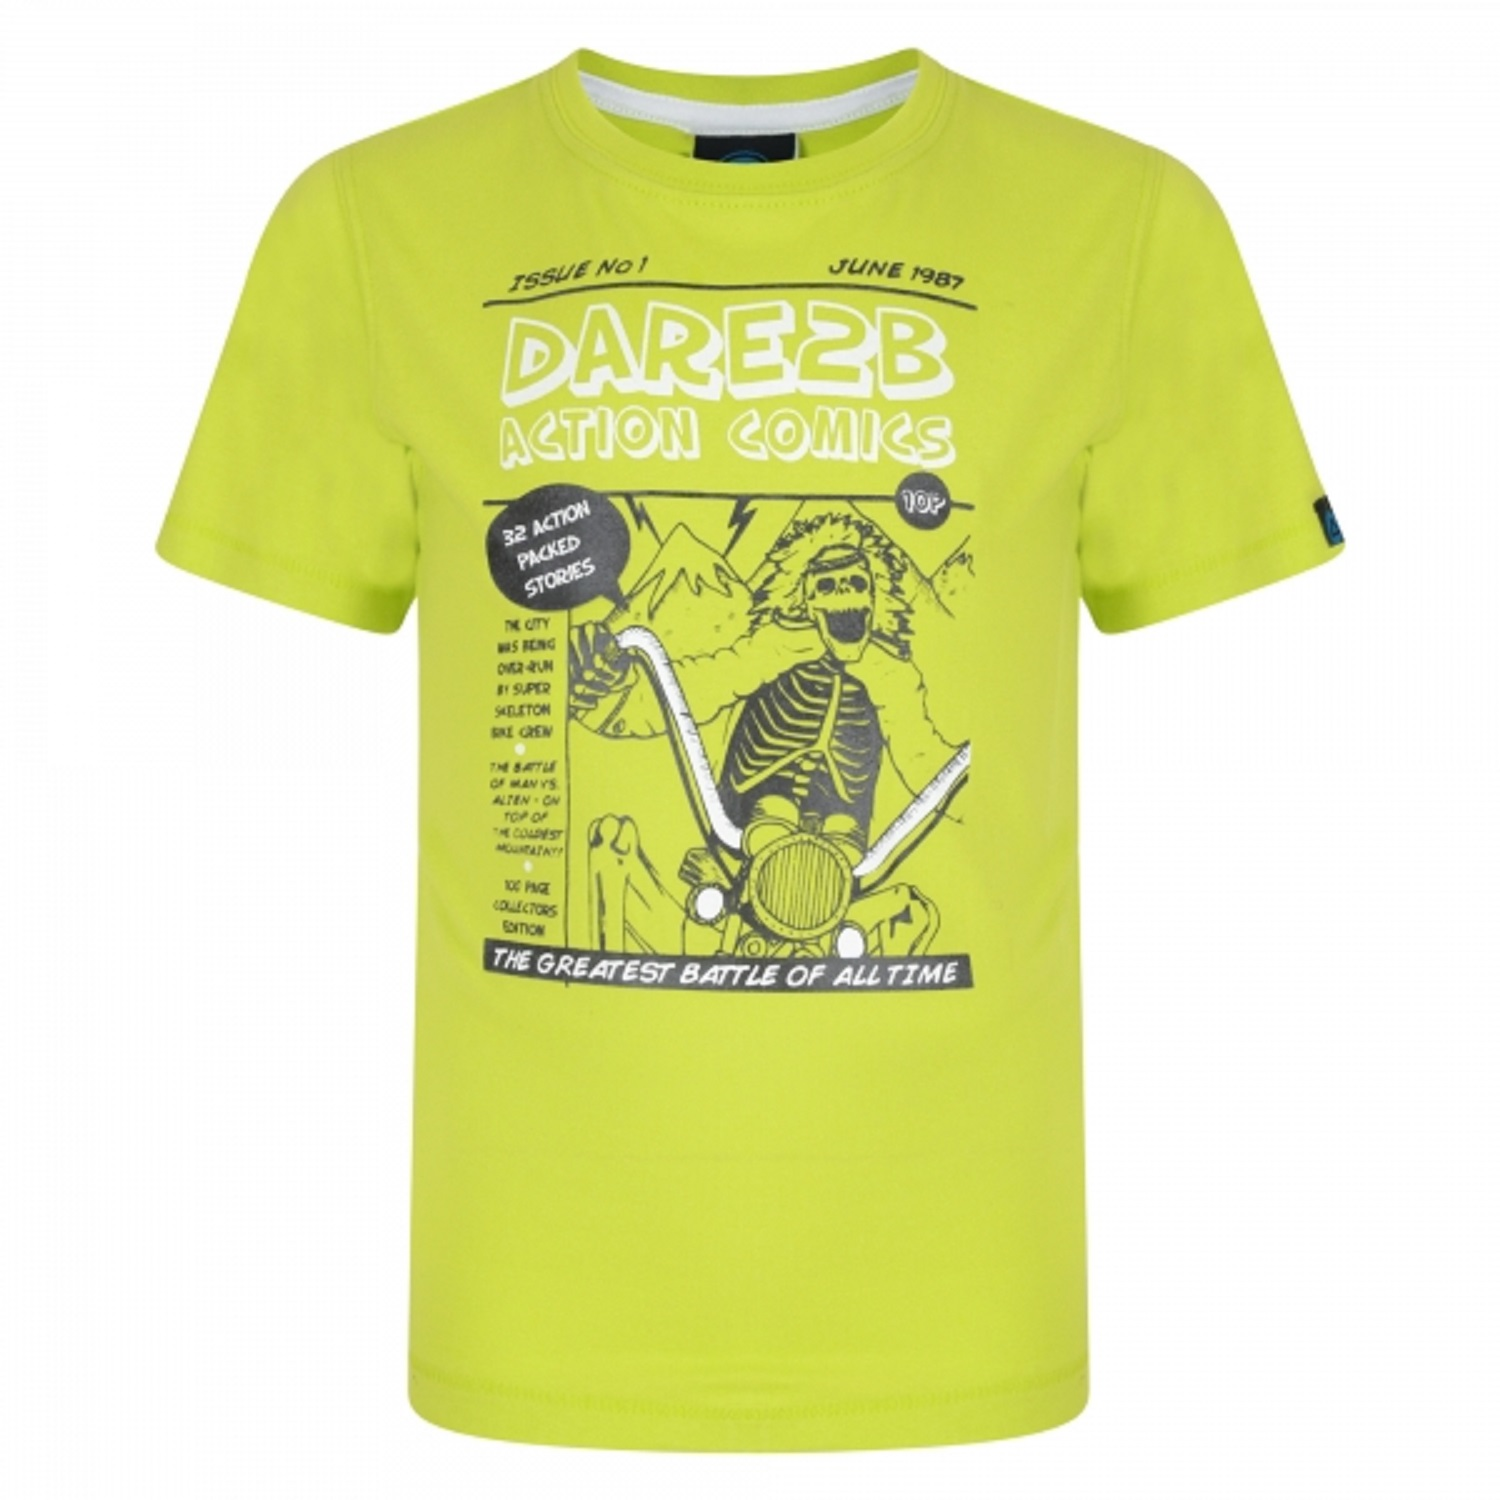 Dare2b-Cross-Bones-Kids-Quick-Wicking-Fabric-T-Shirt-Green-Size-34-034